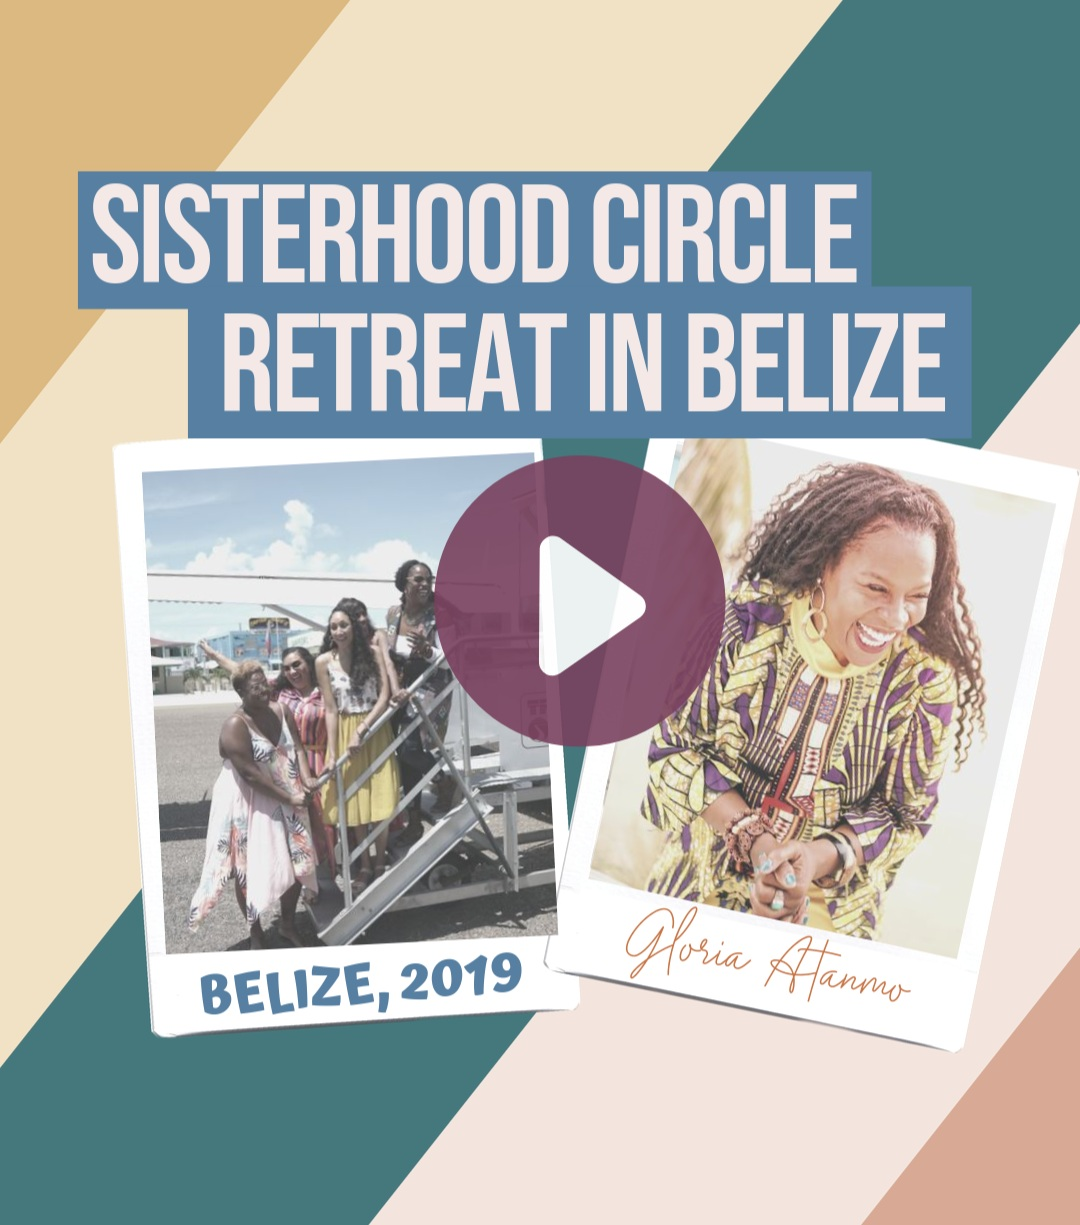 SISTERHOOD CIRCLE RECAP VIDEO + TESTIMONIALS - Still unsure of what to expect at these one-of-a-kind retreats? Watch this recap on IGTV to get a glimpse into the luxury, laughs, and learning we all experience together.Past retreat destinations include: Playa del Carmen, Zanzibar, Cappadocia, Bali, Belize, and Malta.